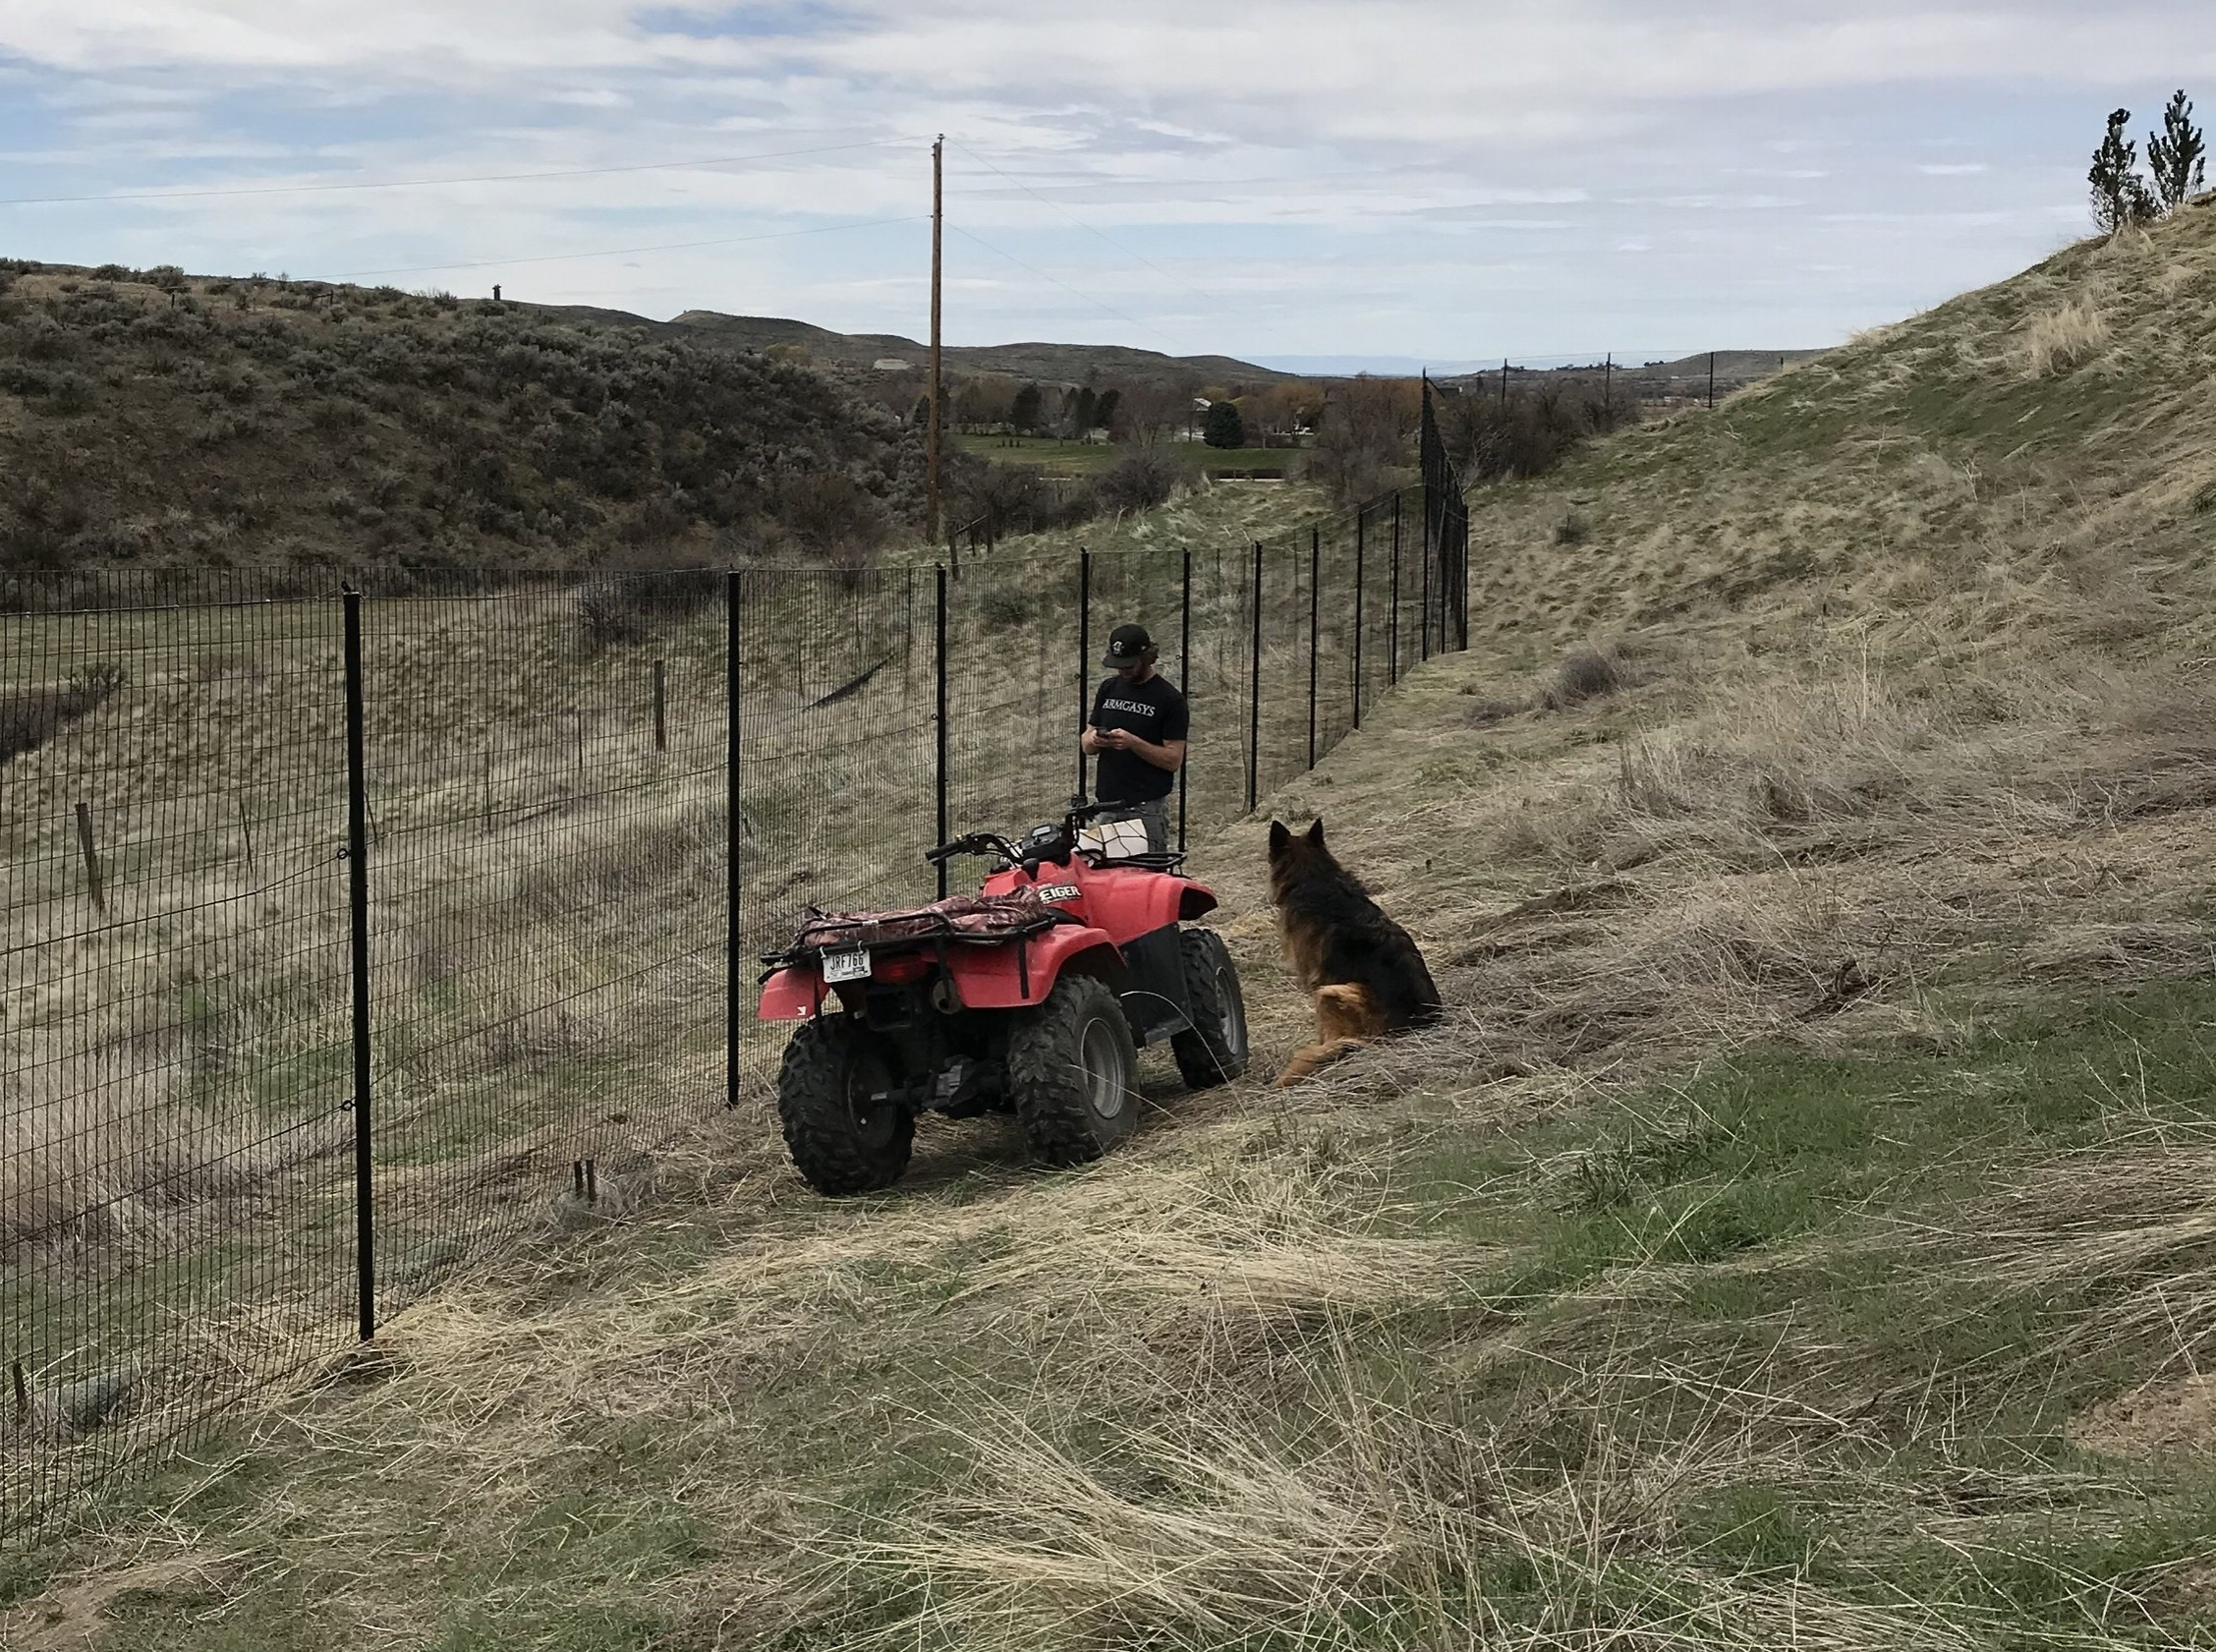 Installation by Starratt Custom Fence in Idaho using the Benner Deer Fence System. The Shepard is supervising. If you look closely, you can see the 4 metal cable system being used to help strengthen the overall integrity of the fence. This  deer fence  is used to keep not only deer out, but also elk and coyote.